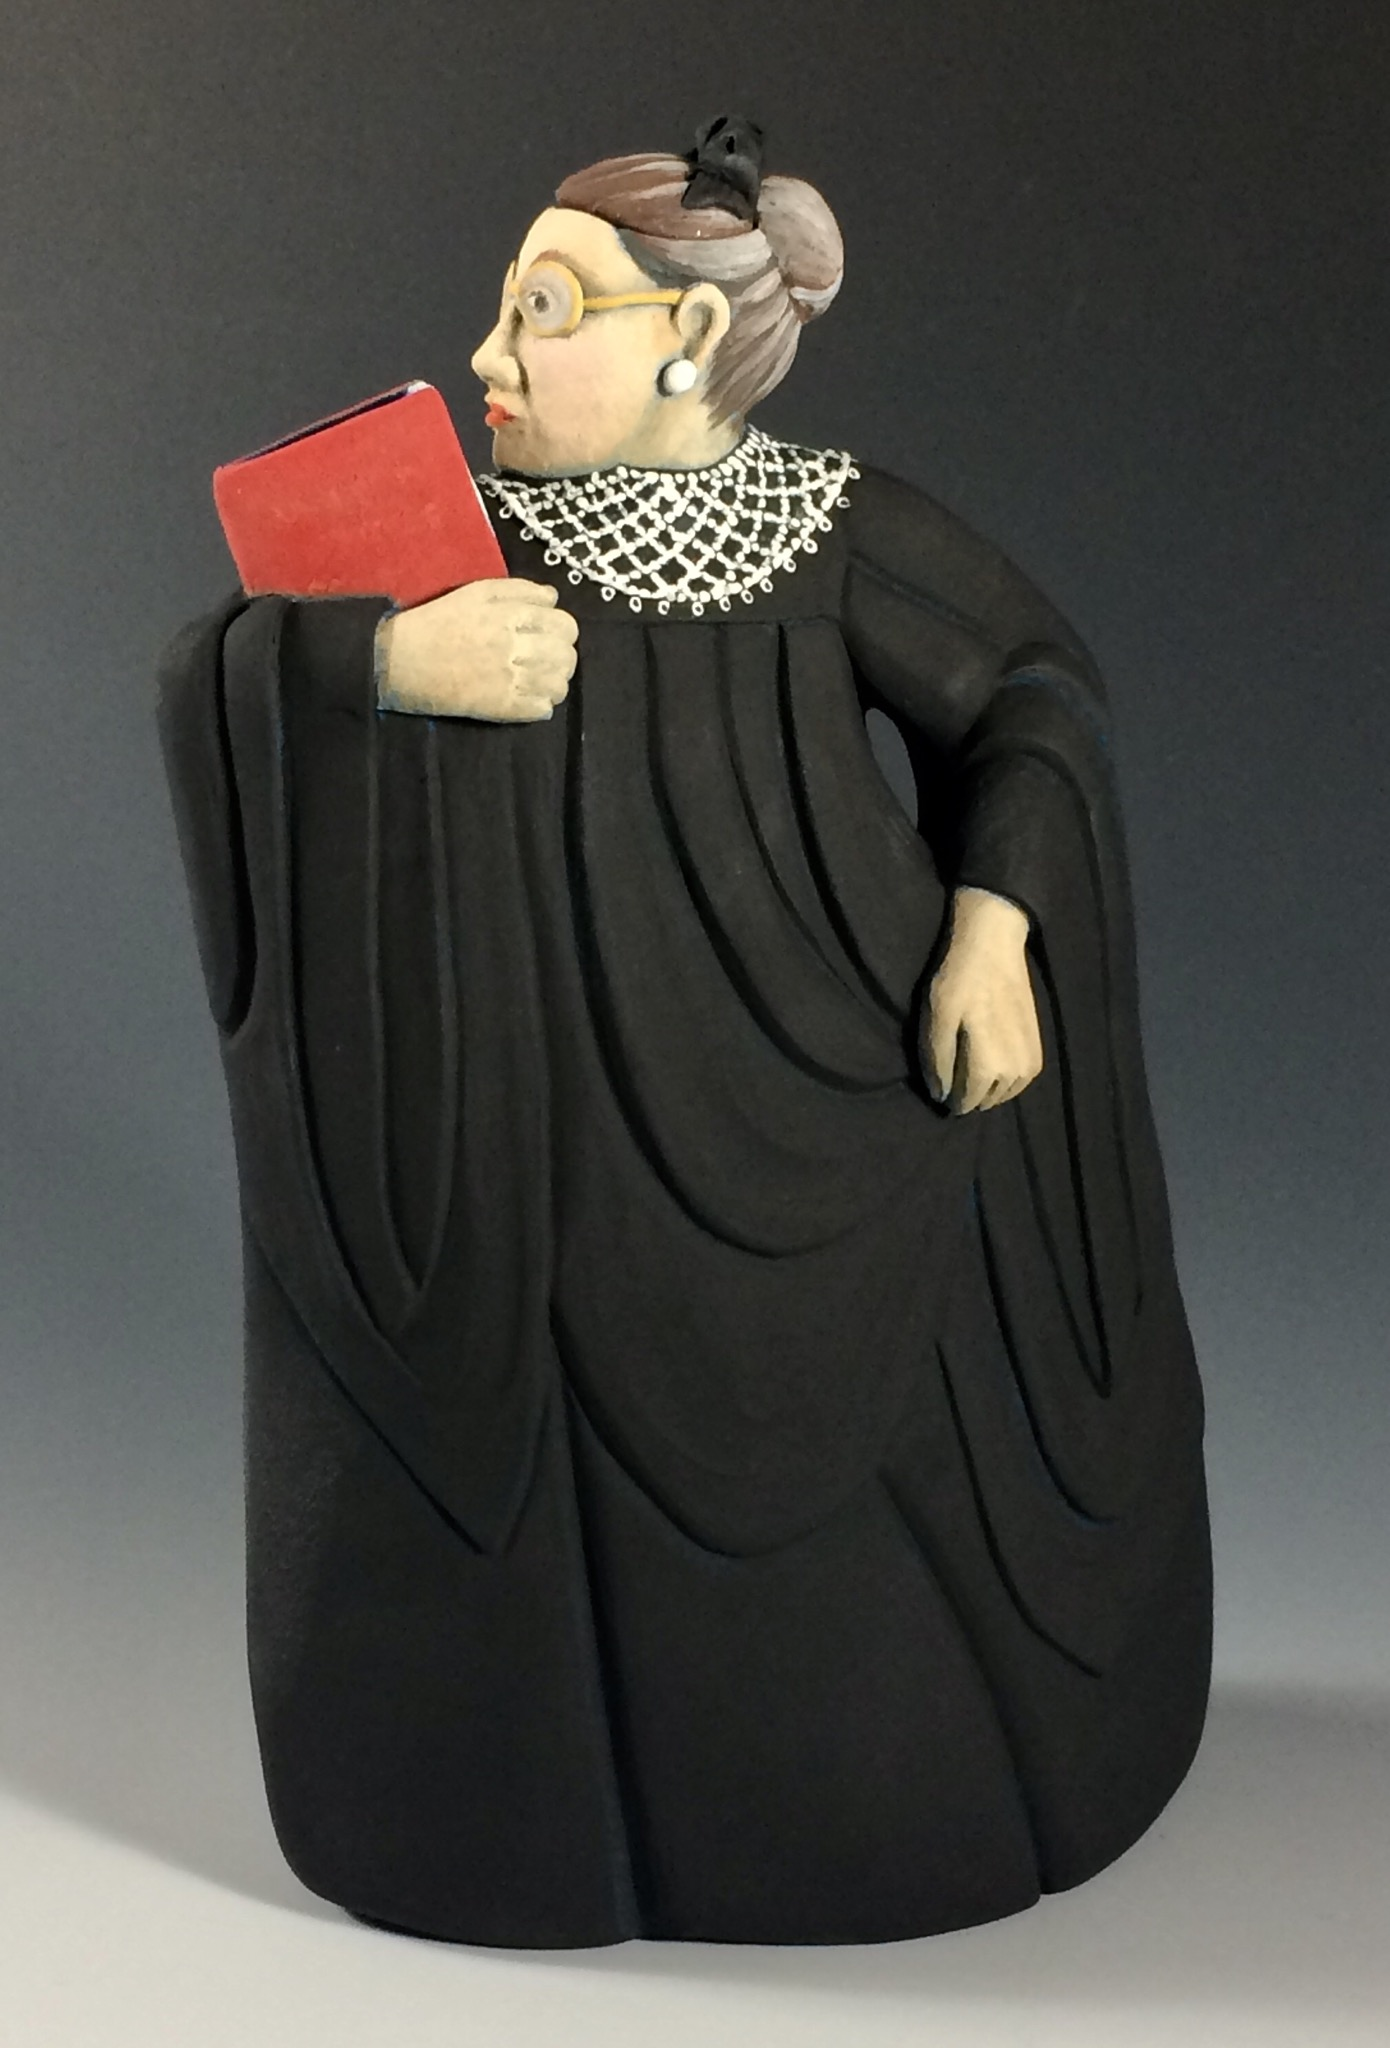 A Ruth Bader-Ginsburg teapot that Carrie Anne Parks created from handbuilding techniques.